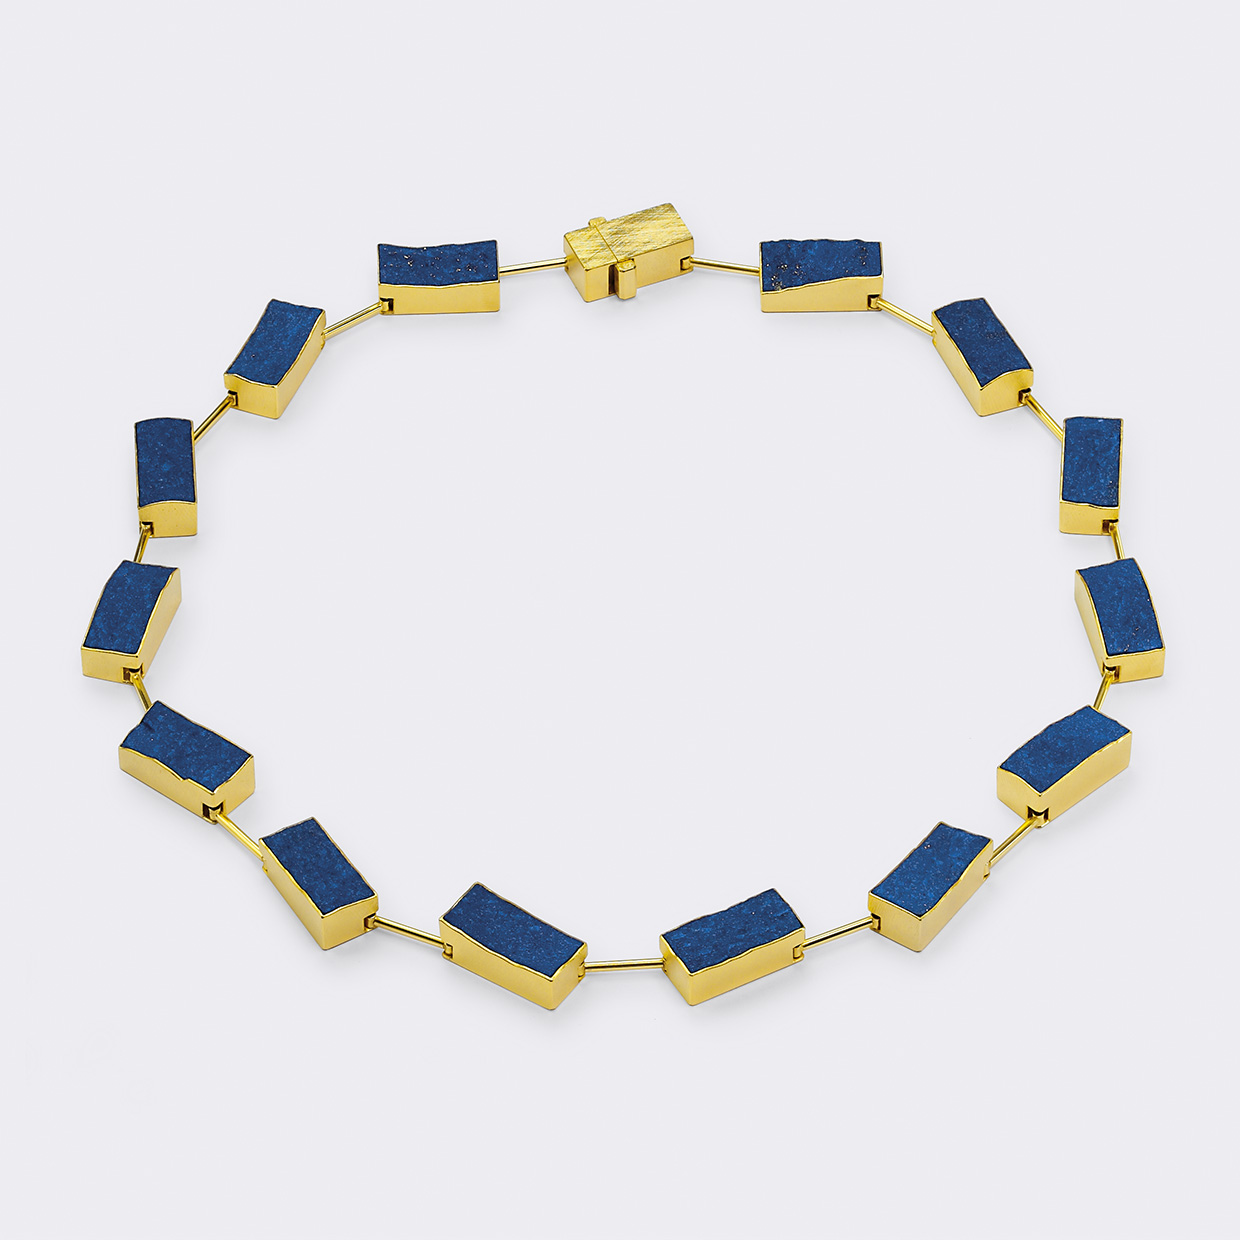 necklace  2012  gold  750  lapislazuli  490x8  mm